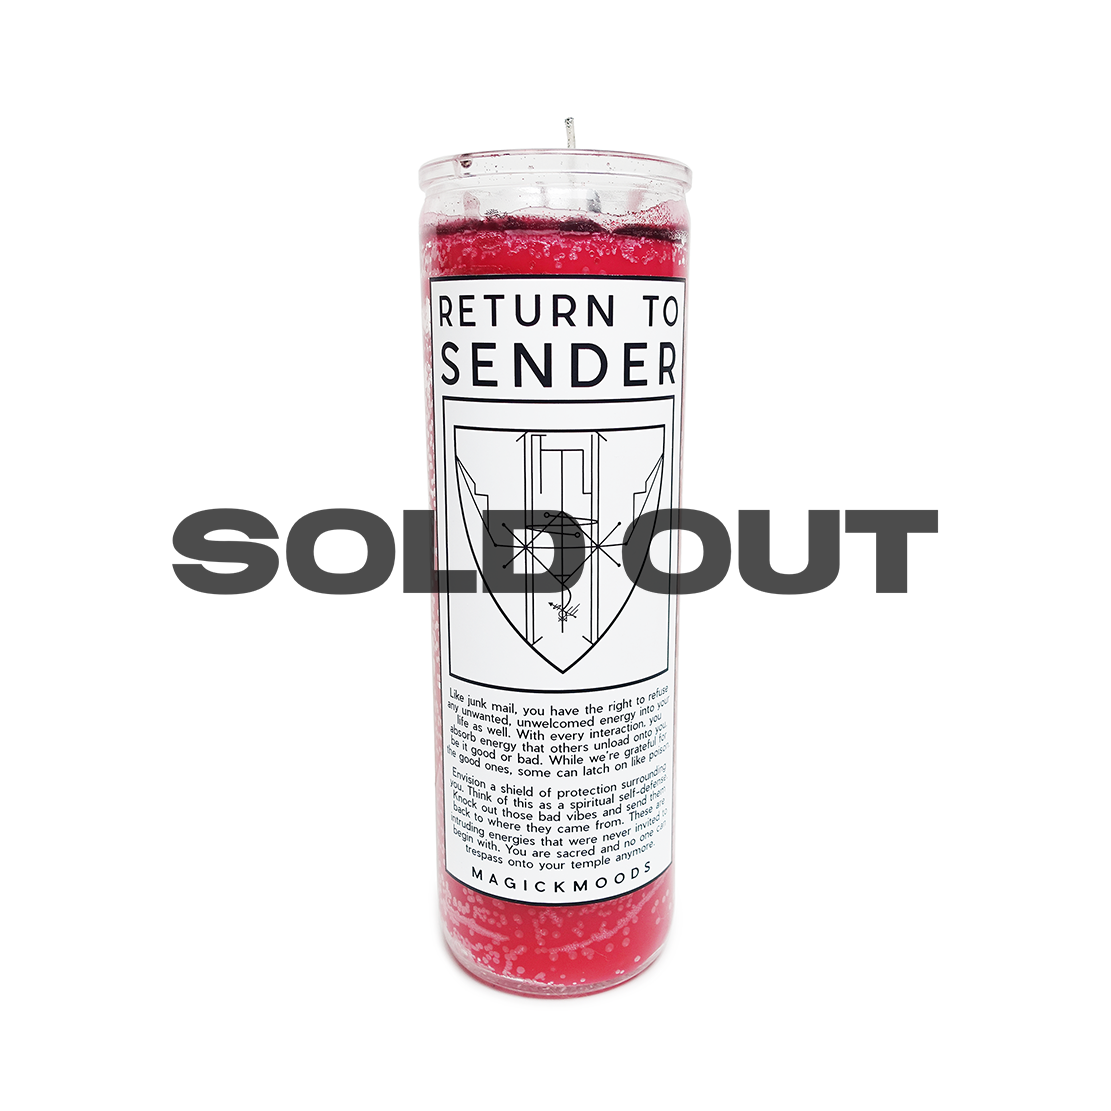 Return To Sender 7-Day Meditation Candle - PREORDER - Ships by 8/14